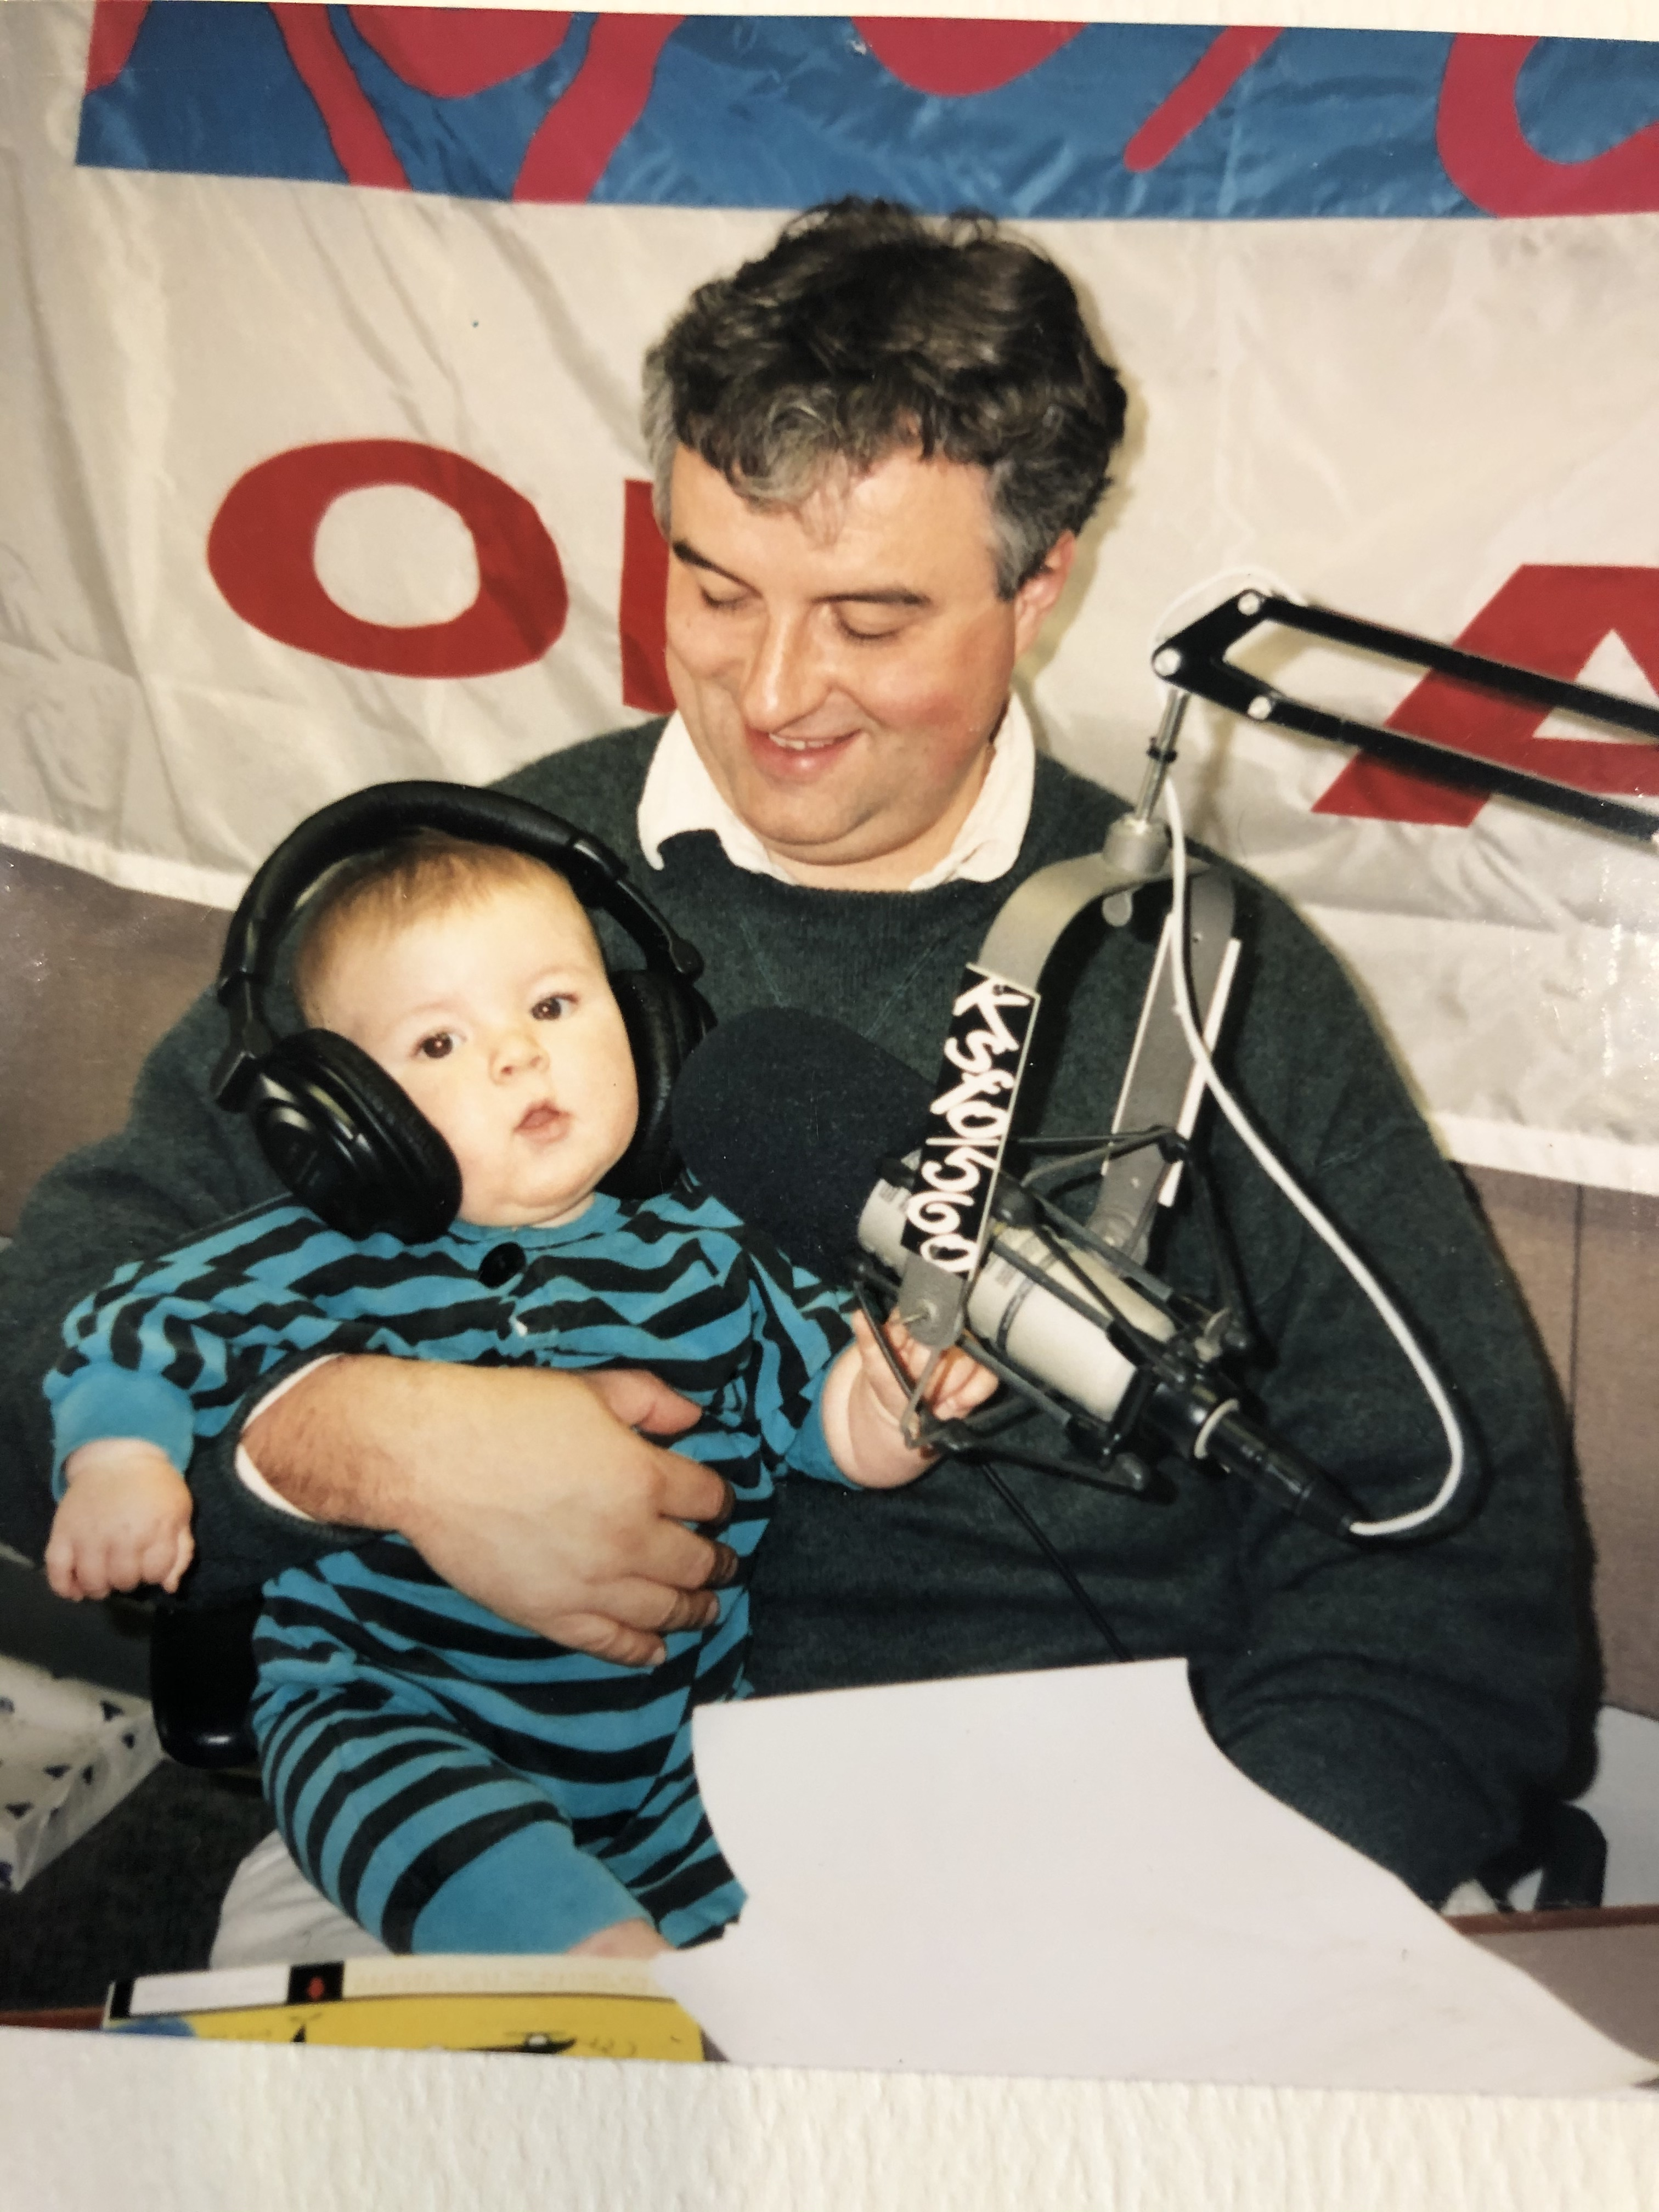 Leo teaching his baby boy how to broadcast, KSFO 1994